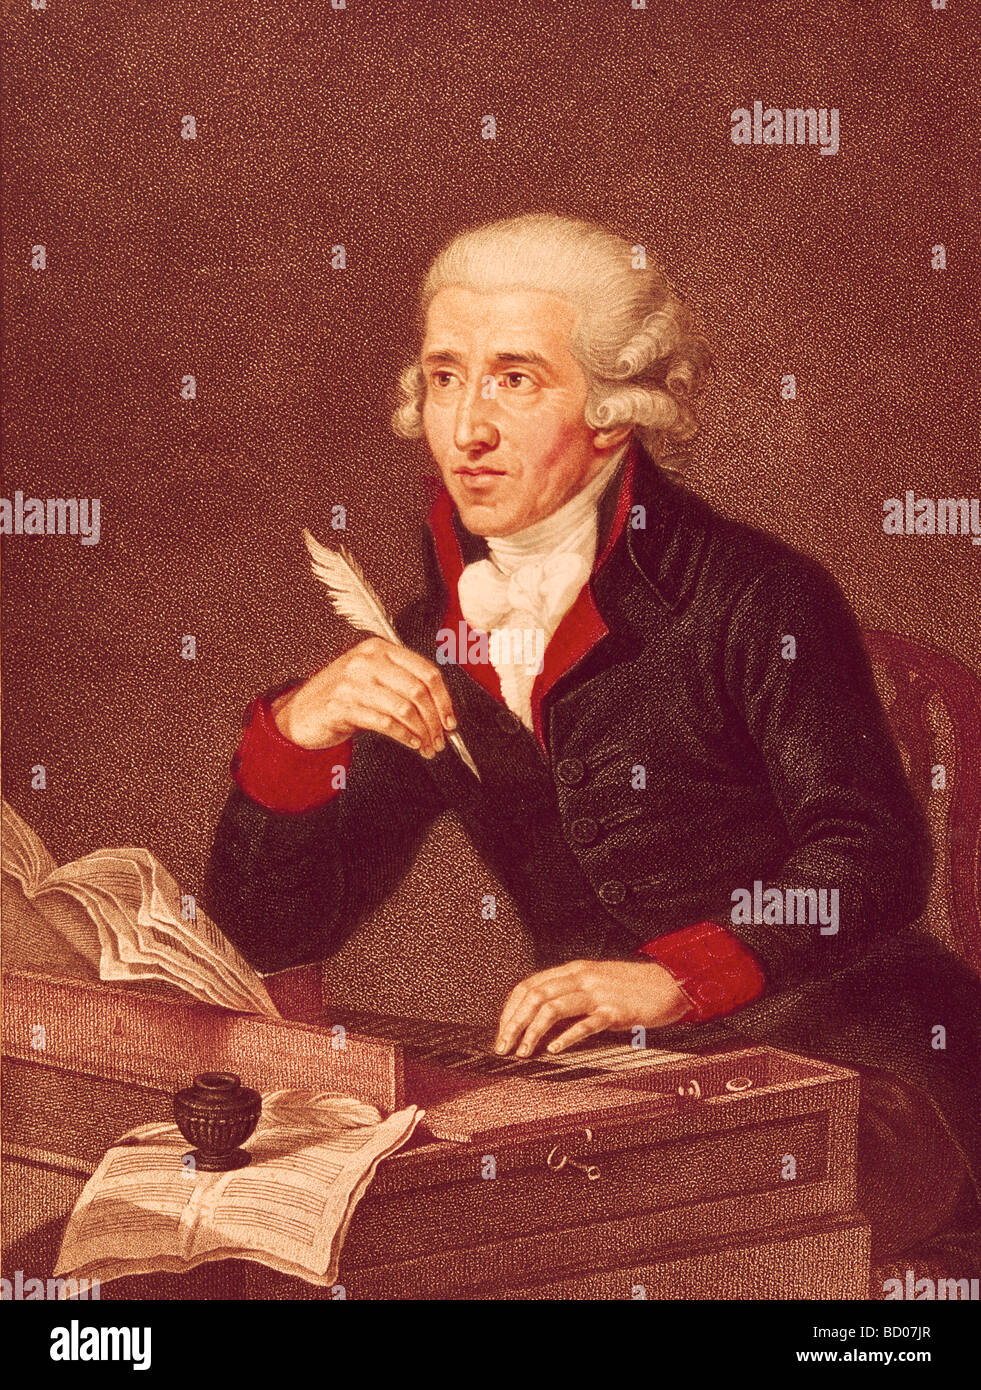 essay on franz joseph haydn The symphony no 101 in d major (hoboken 1/101) is the ninth of the twelve  london symphonies written by joseph haydn  notes on the program:  symphony no 101 in d major, clock: franz joseph haydn leon levy digital  archives.